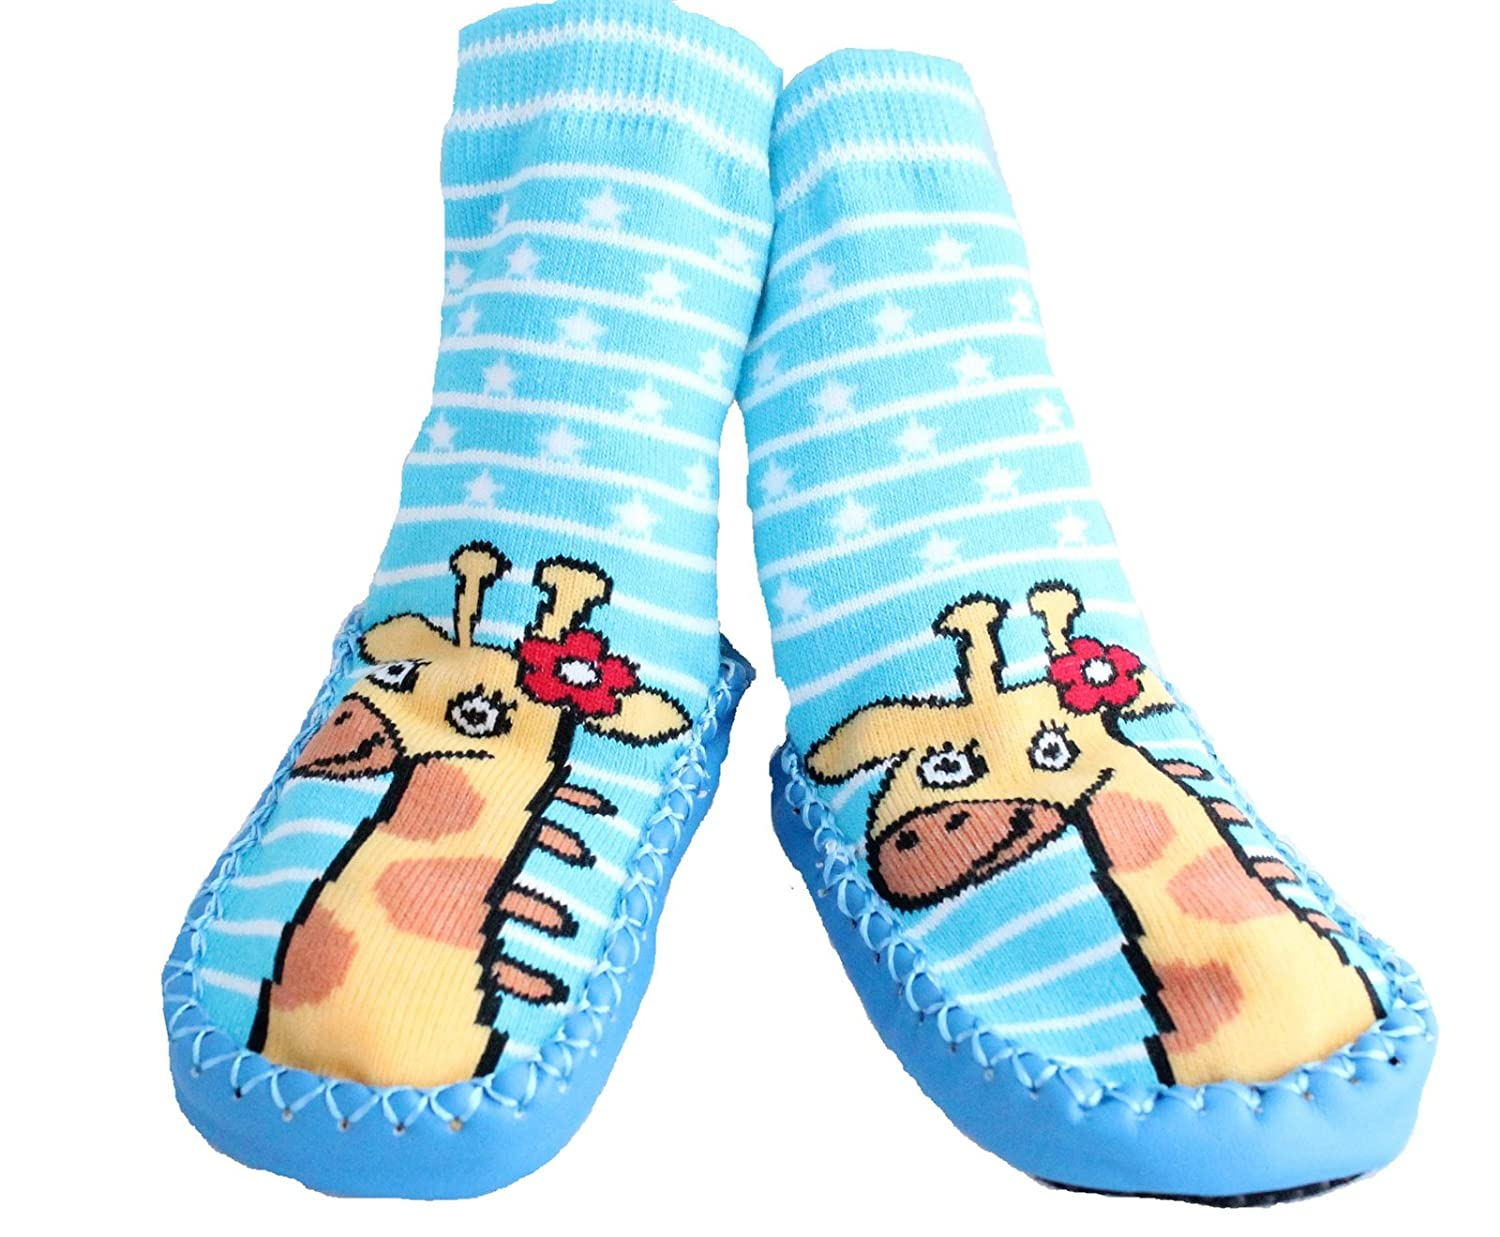 Baby Toddlers Kids Indoor Slippers Shoes Socks Moccasins NON SKID BLUE STRIPED GIRAFFE (1.5-2.5 YRS)